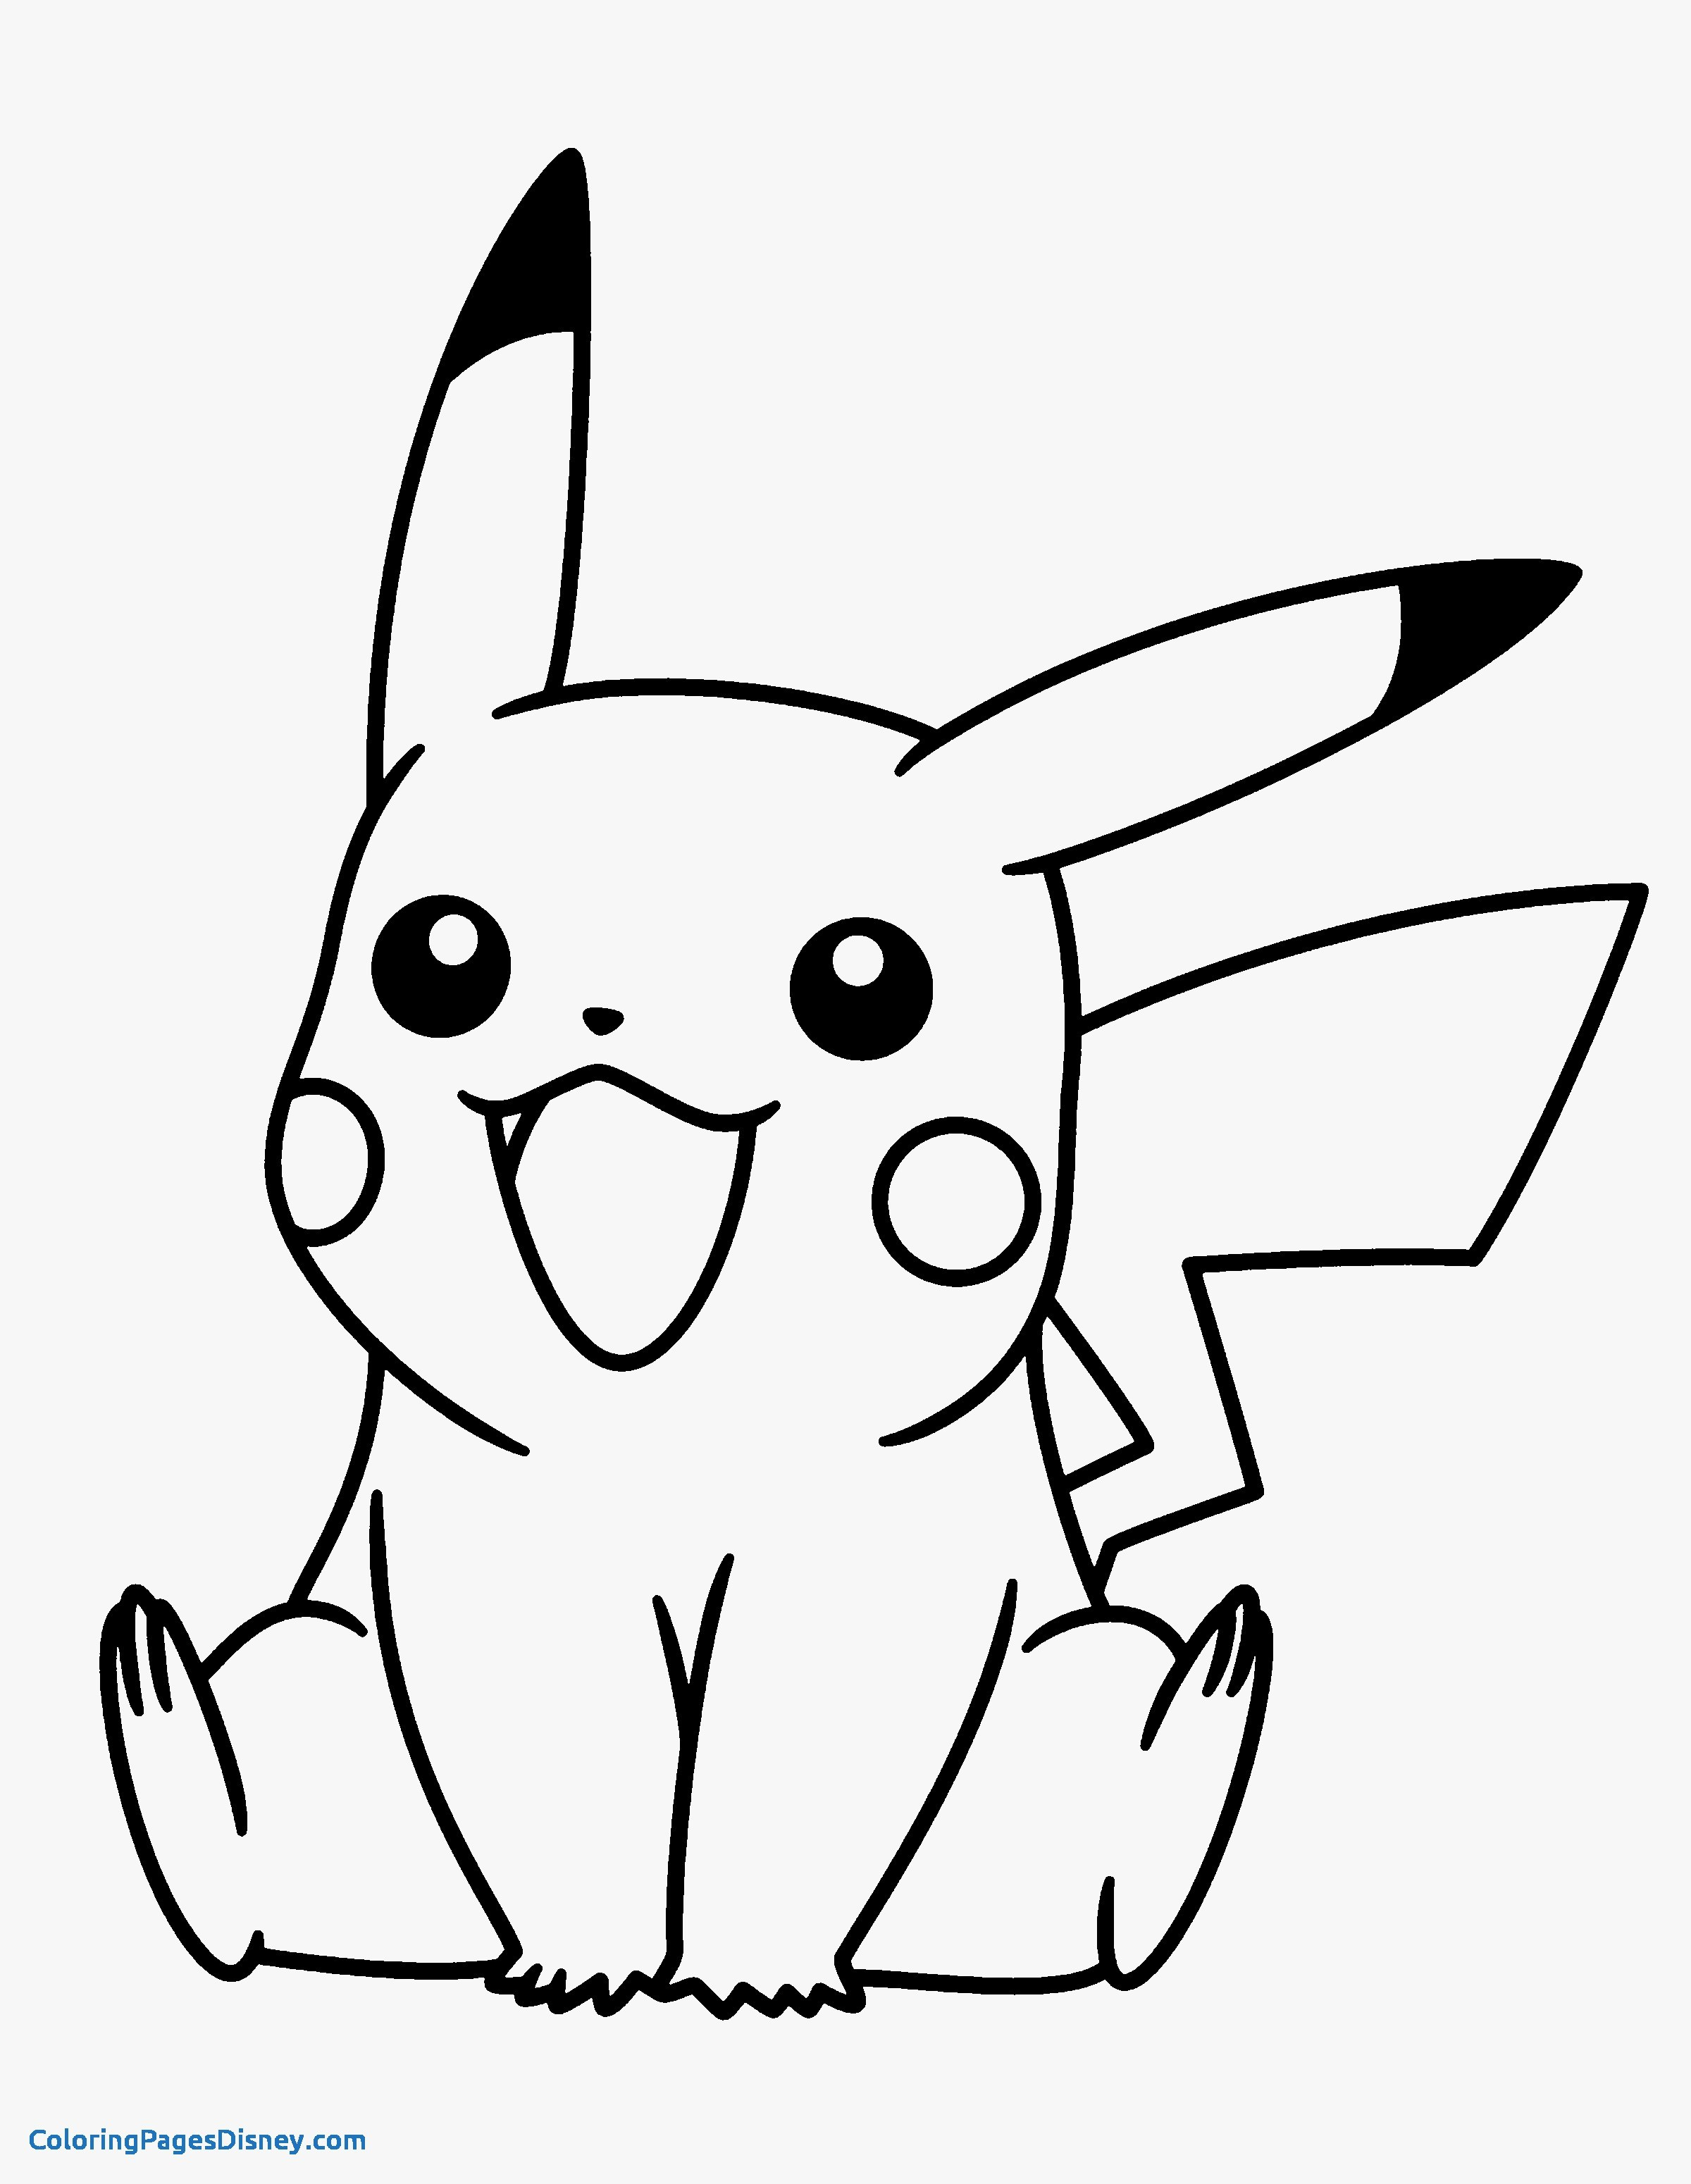 Pokemon Coloring Pages Pikachu At Getdrawings Com Free For